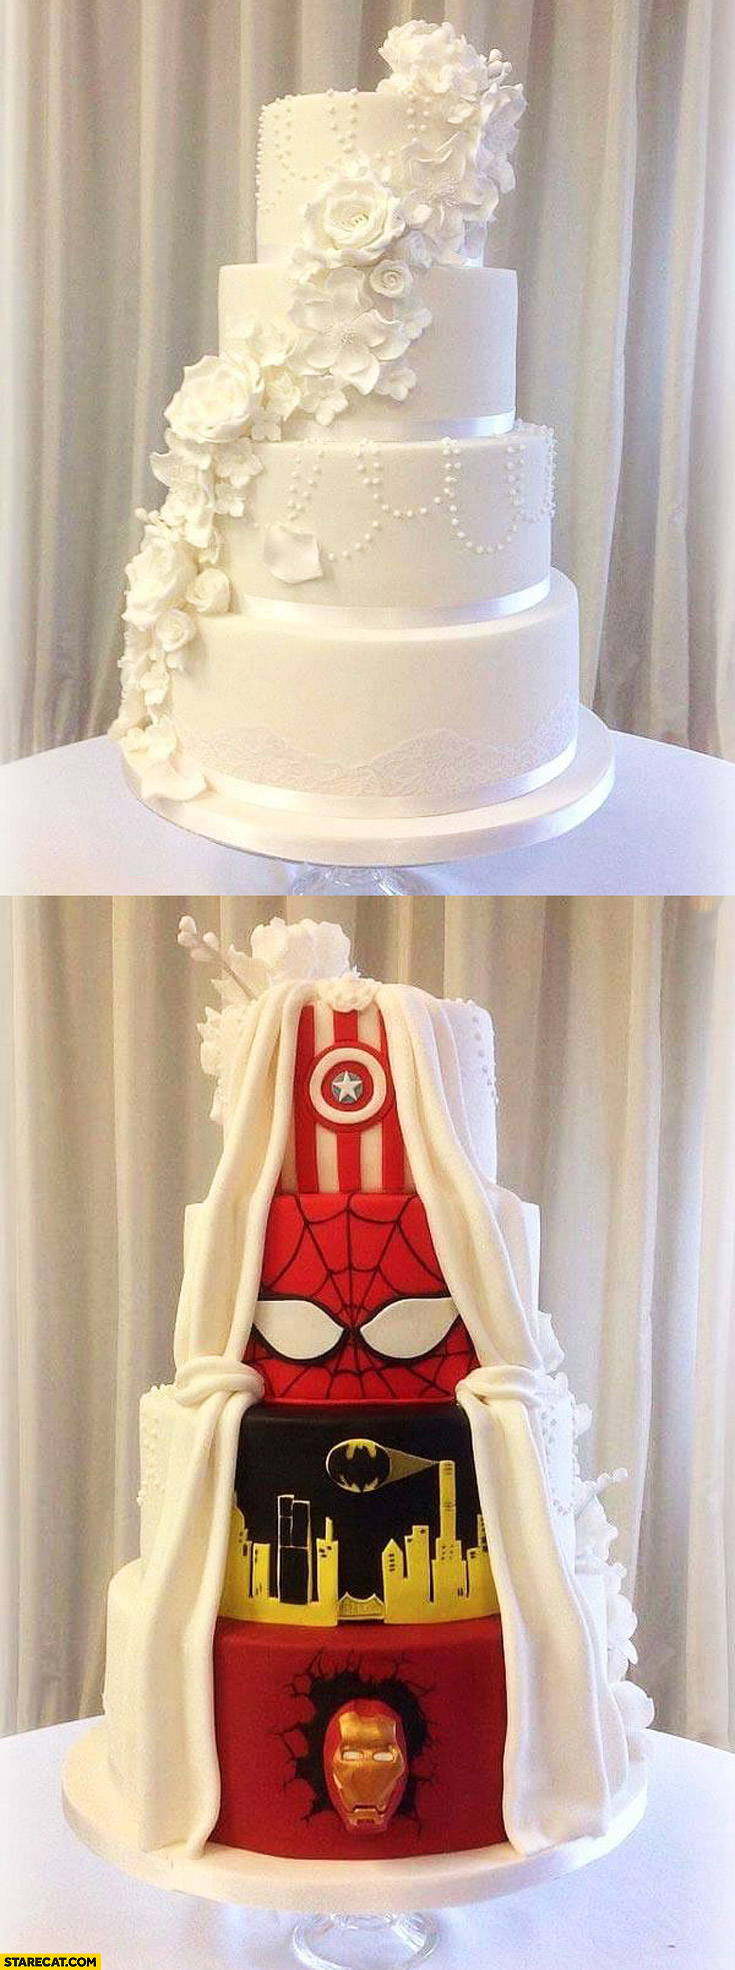 Wedding cake Captain America Spiderman Batman Ironman